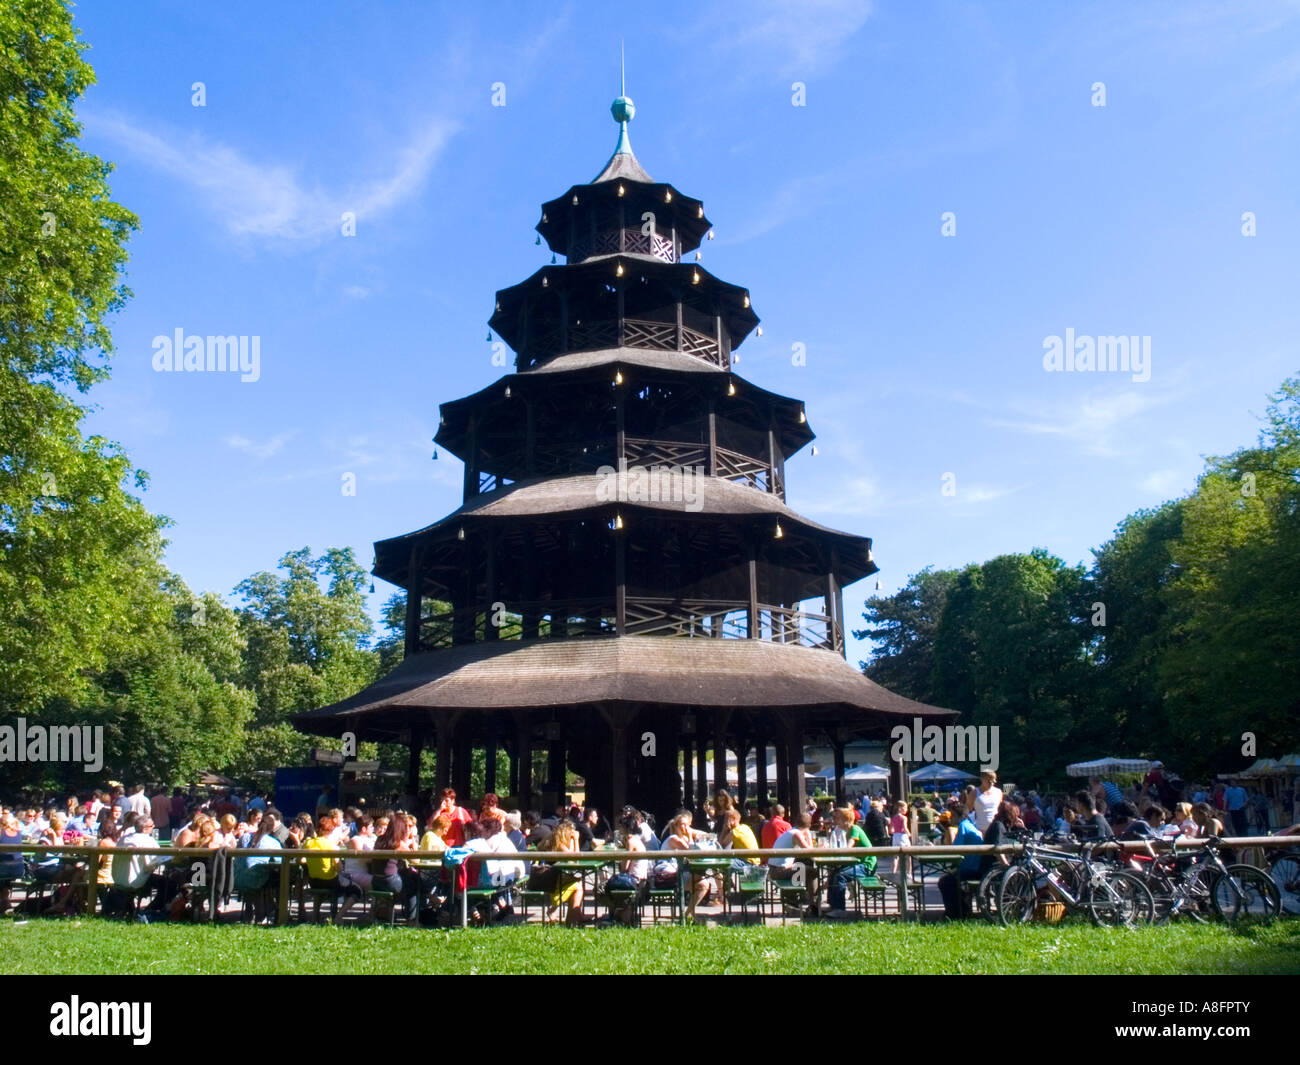 people enjoy beer in beer garden chinese tower english garden munich stock photo royalty free. Black Bedroom Furniture Sets. Home Design Ideas